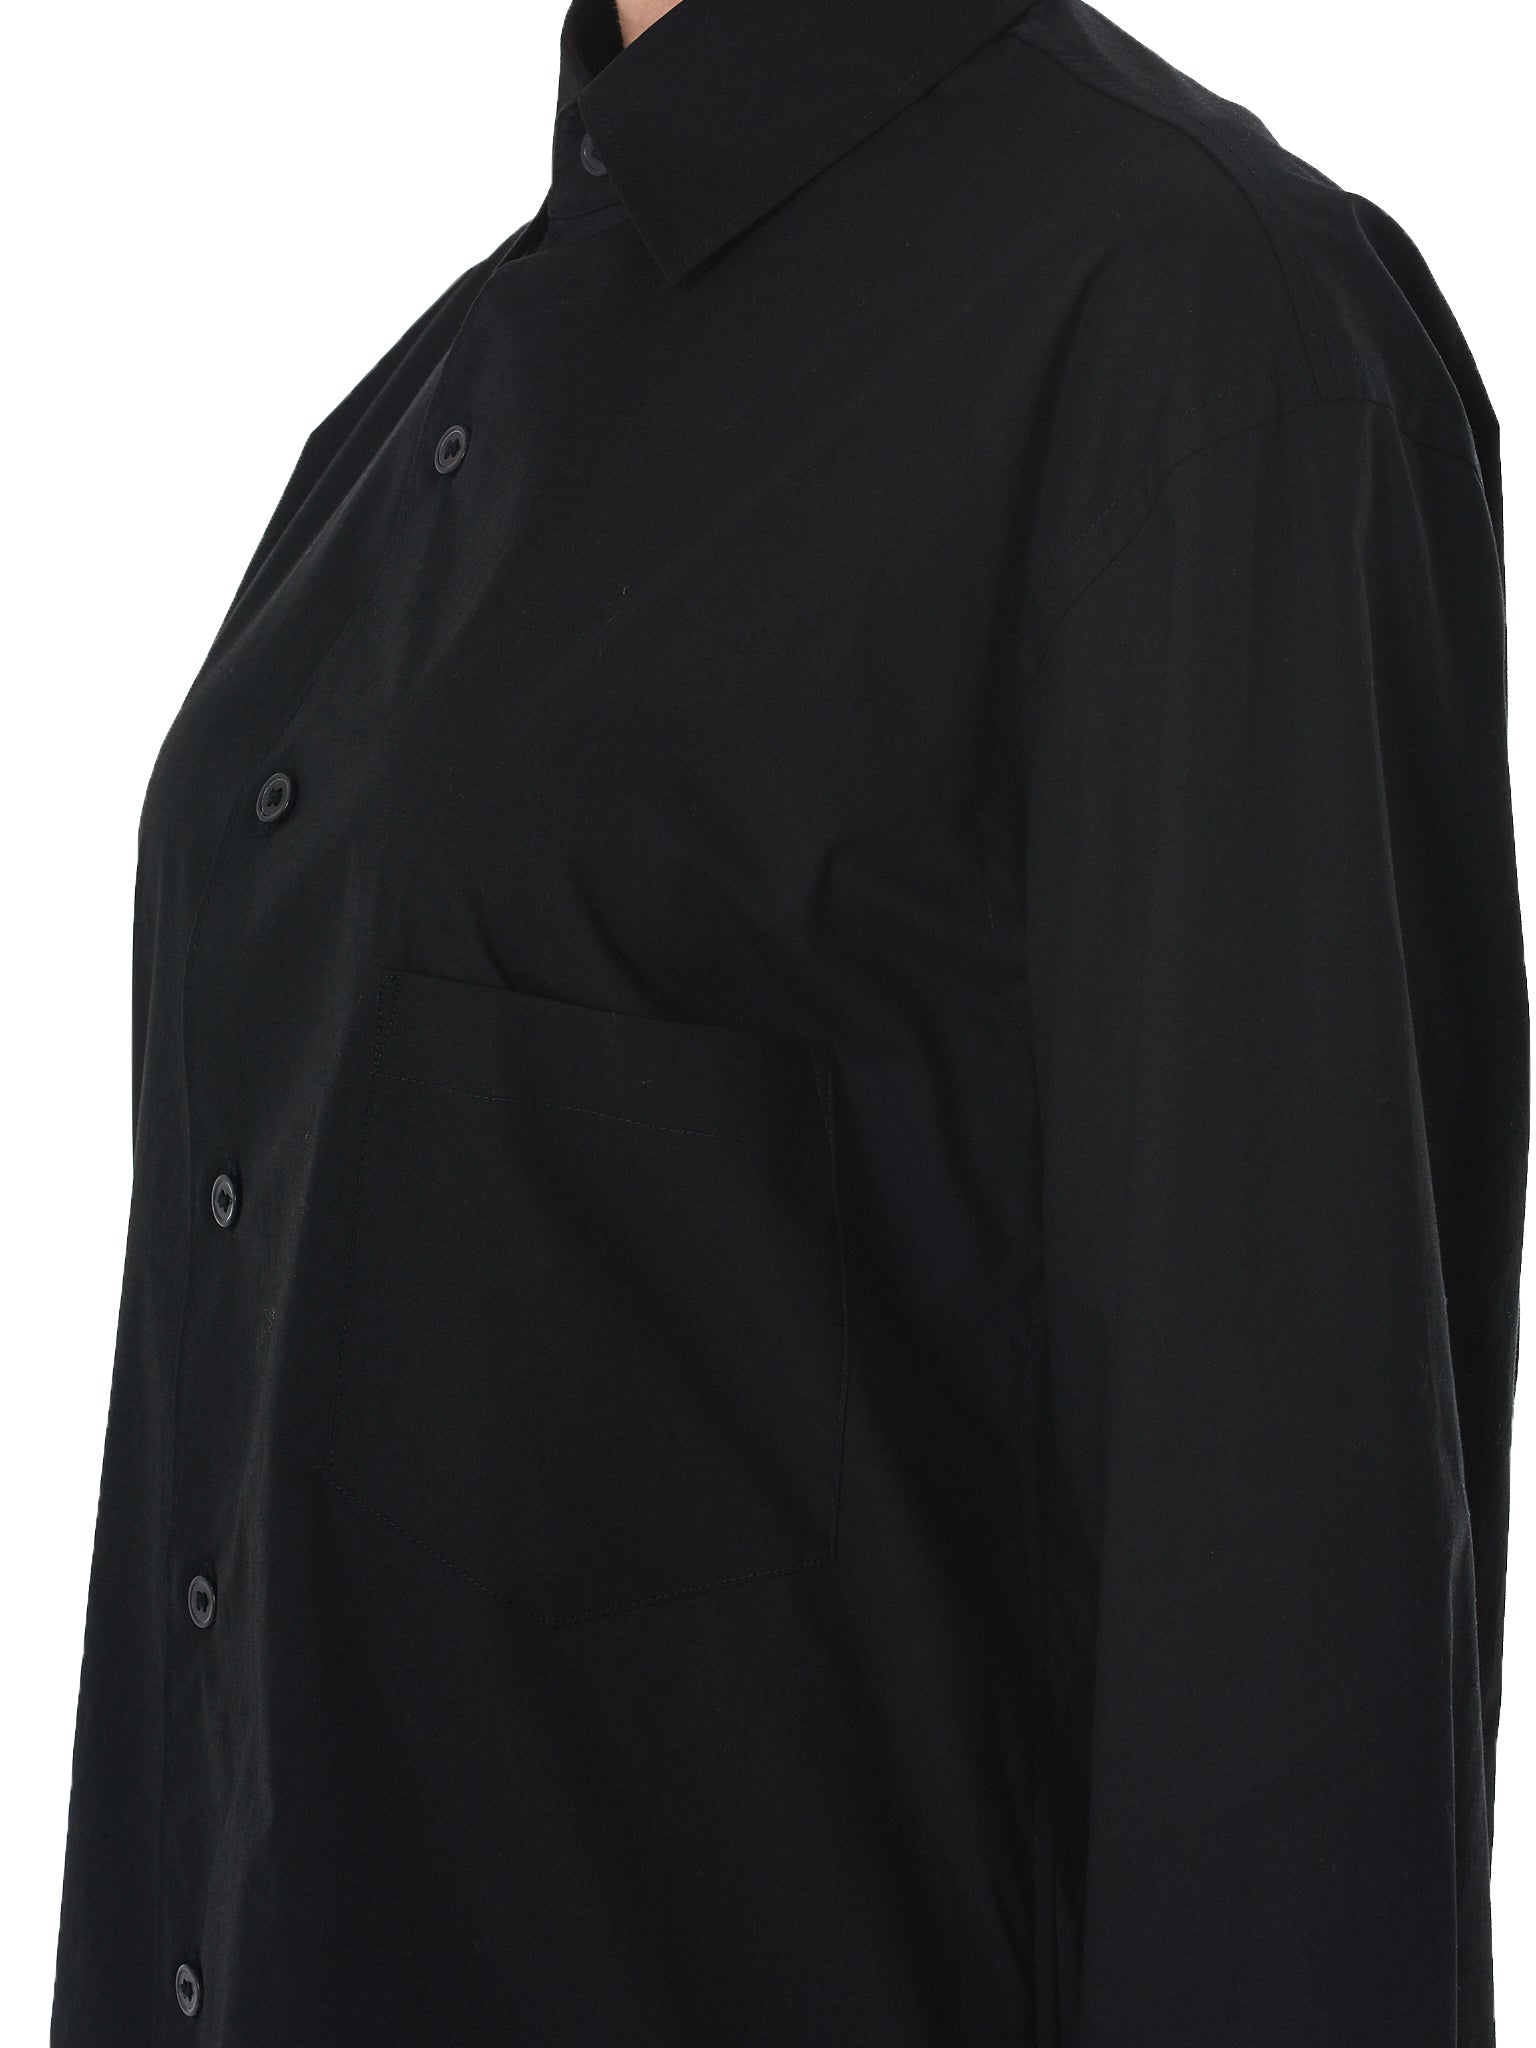 'La Marque' Long Shirt (CY6859-BLACK-WHITE)